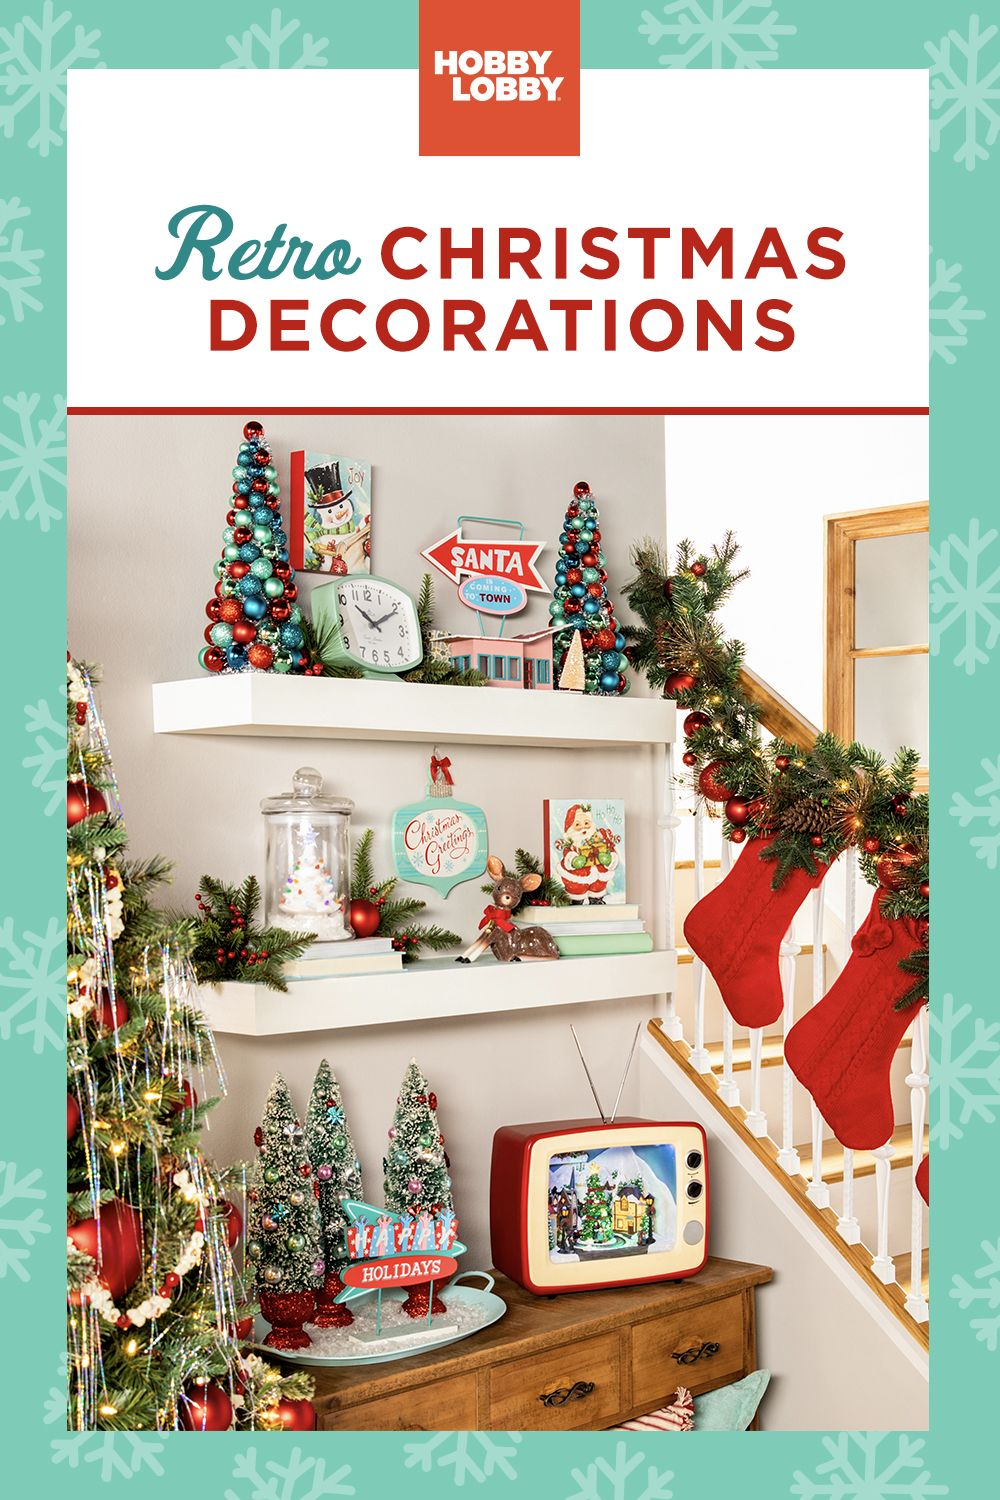 Shop Retro Decor At Your Local Hobby Lobby Diy Christmas Ornaments Easy Christmas Interiors Christmas Room Decor